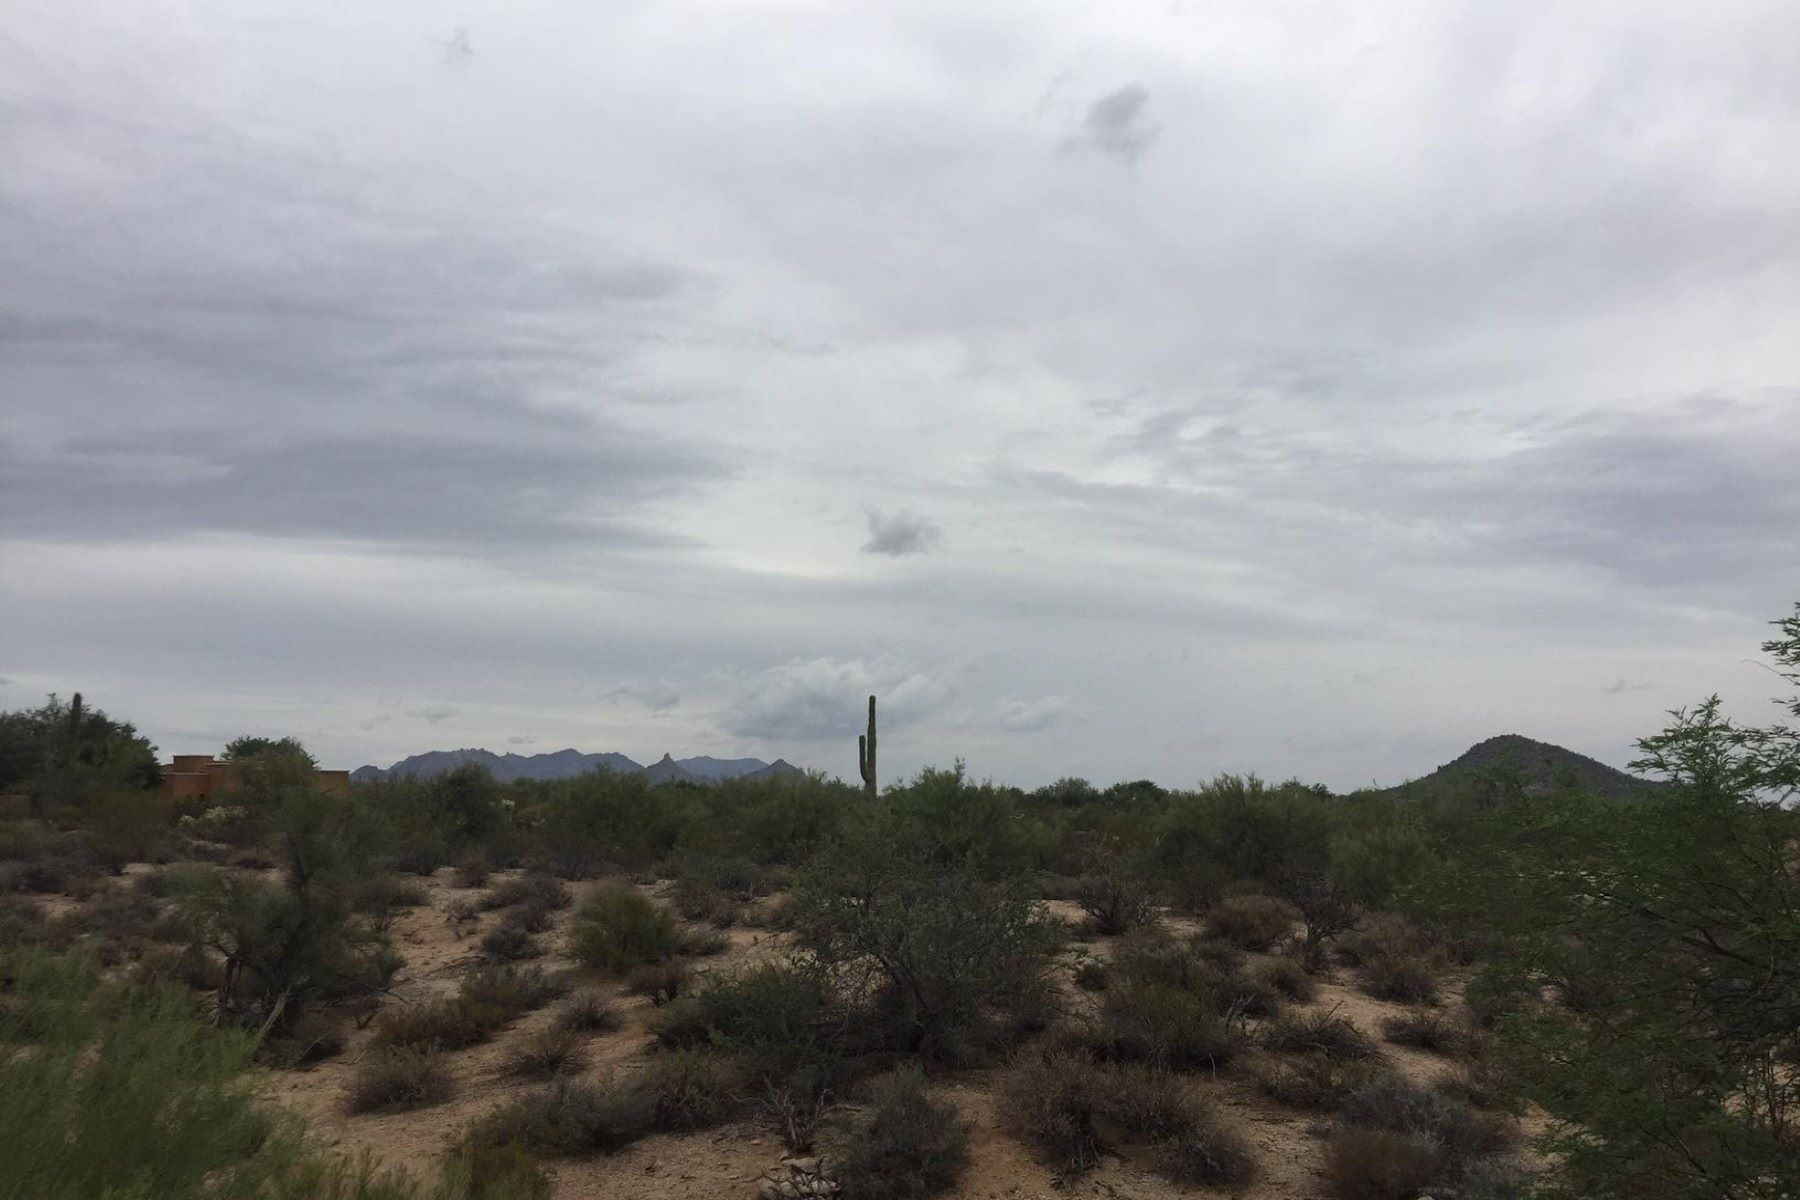 Land for Sale at One of the finest home sites within the gates of Whisper Rock Estates 8015 E Leaning Rock Rd #197 Scottsdale, Arizona, 85266 United States